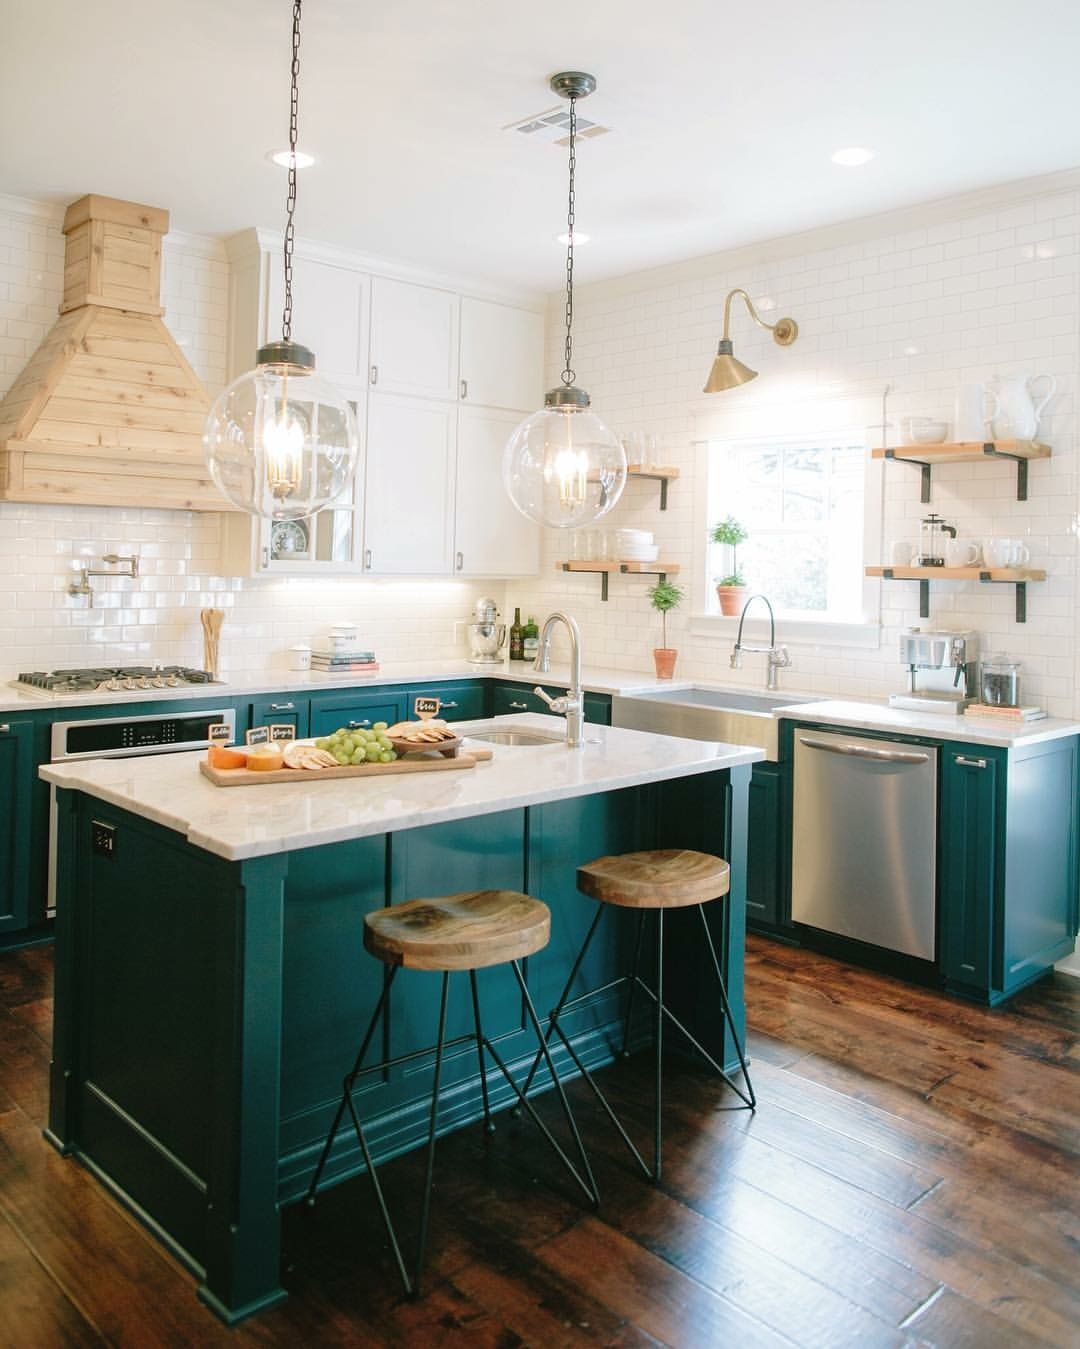 Fixed Upper Teal Kitchen Cabinets Teal Kitchen Teal Kitchen Cabinets Kitchen Inspirations